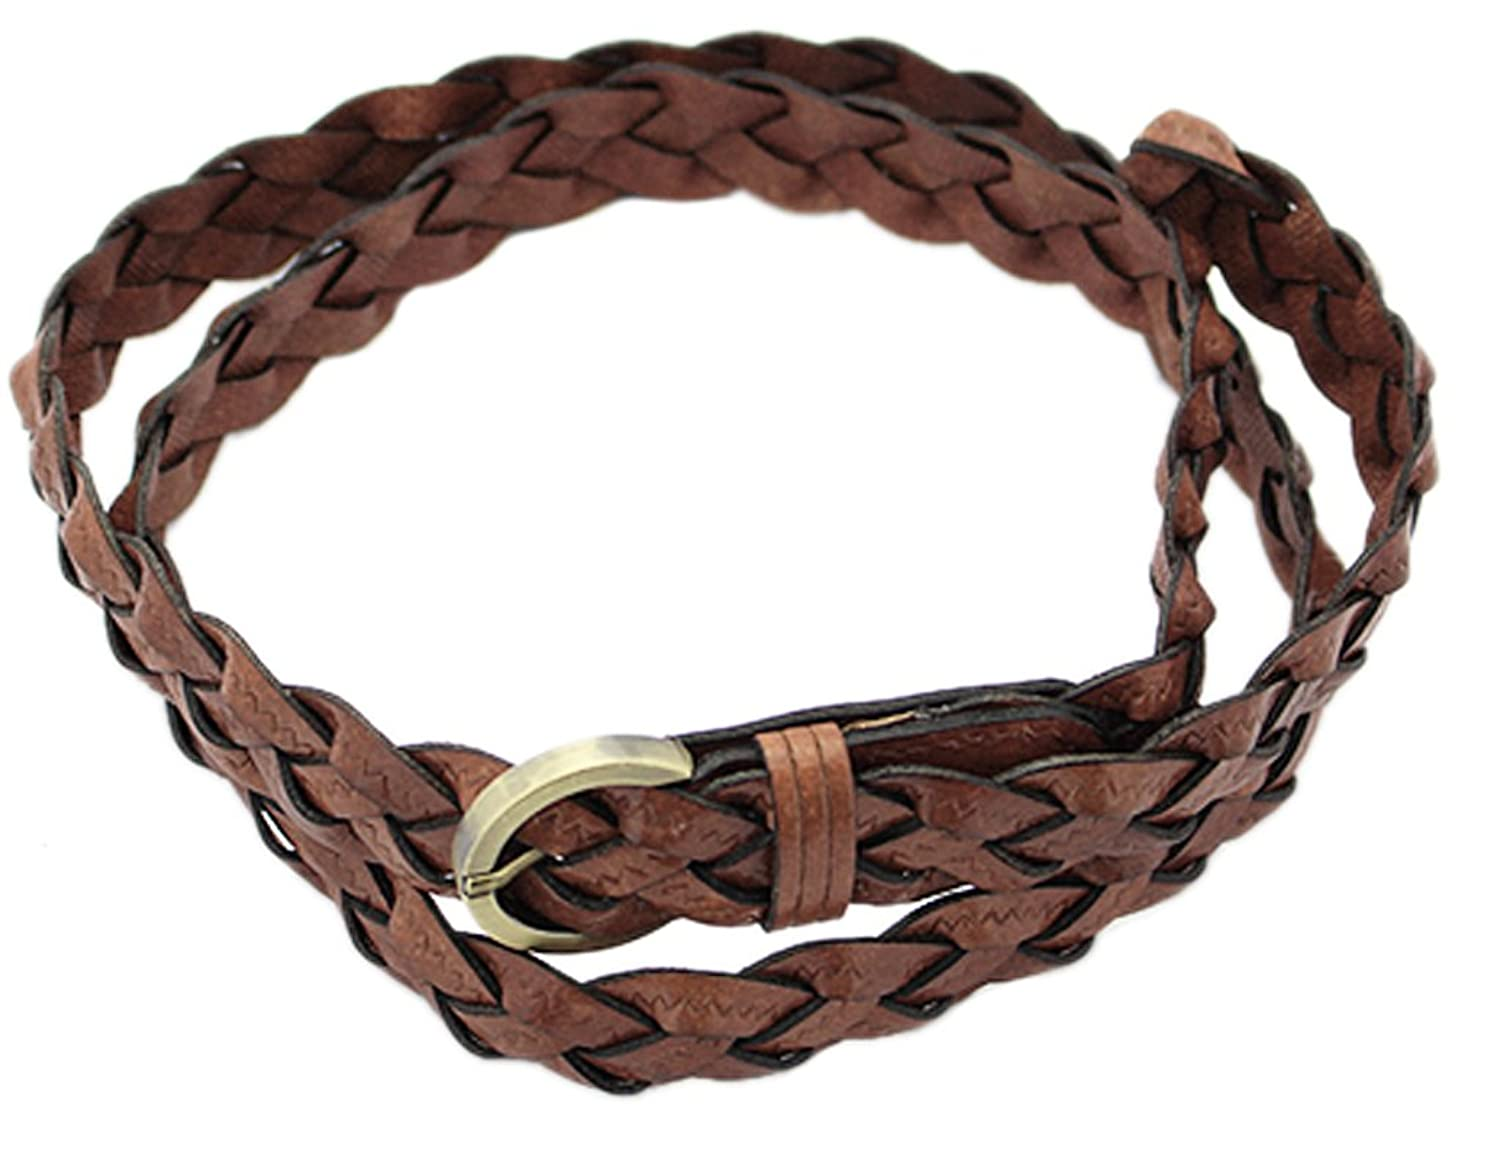 BONAMART @Women Braided Genuine Leather Skinny Belt with Buckle 110cm Ajustable Candy Color